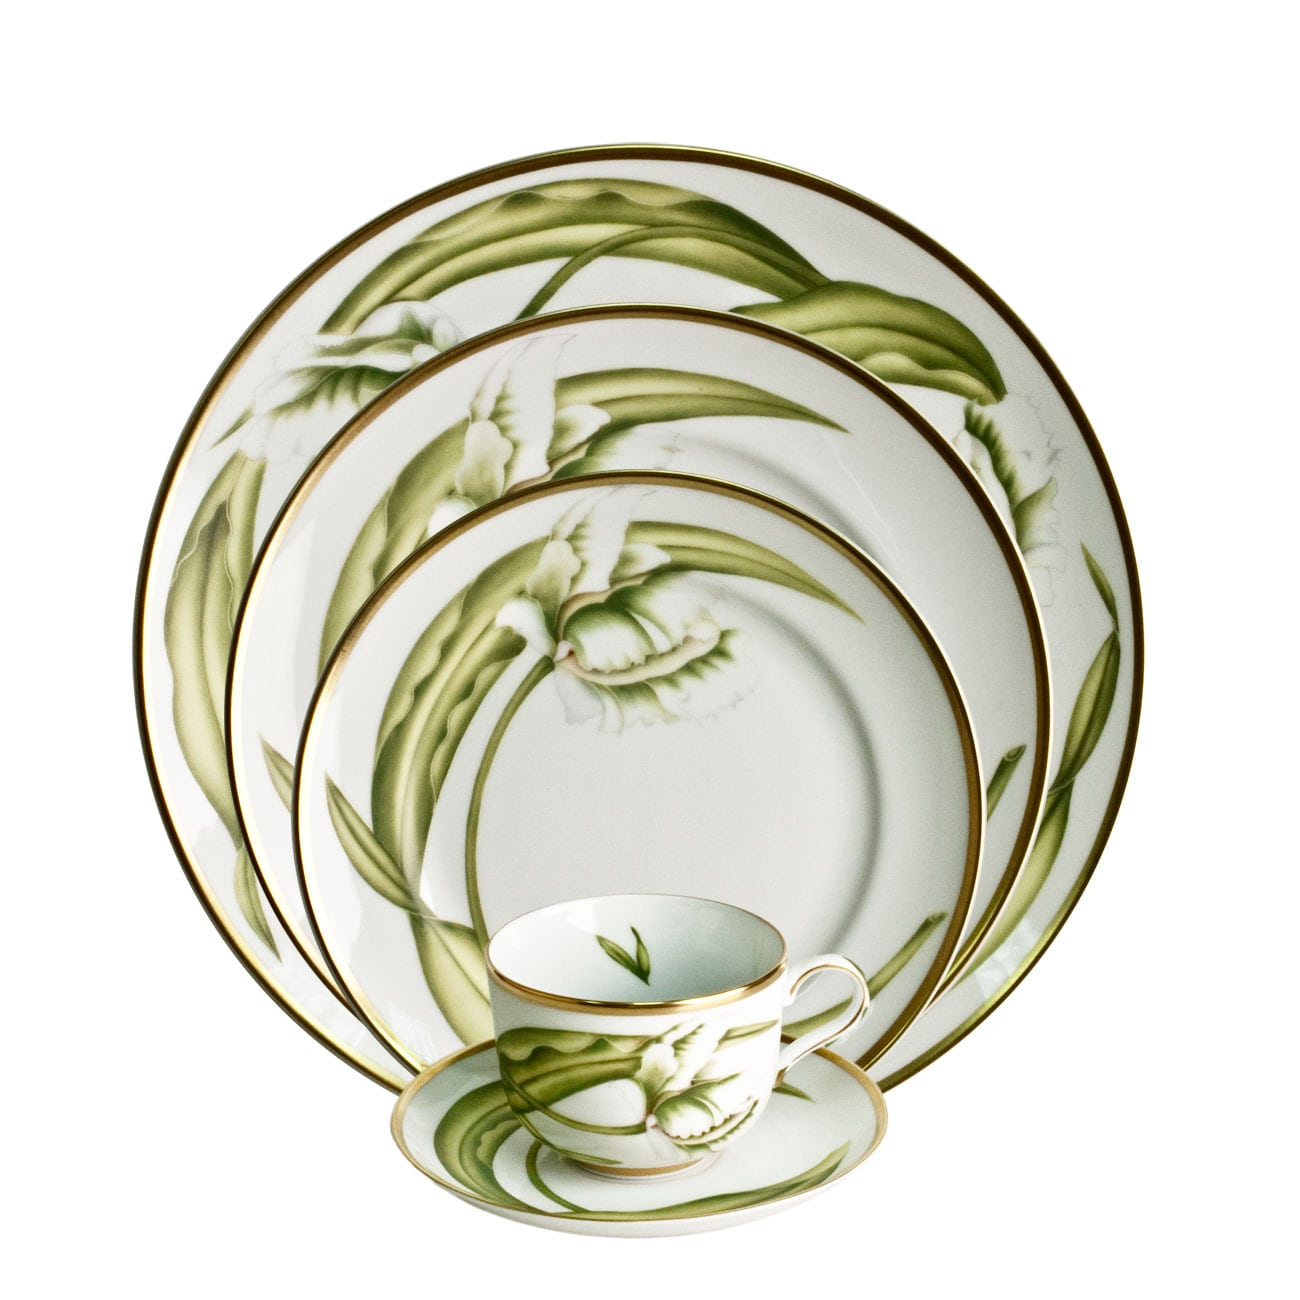 Anna Weatherley White Tulips Dinnerware Collection